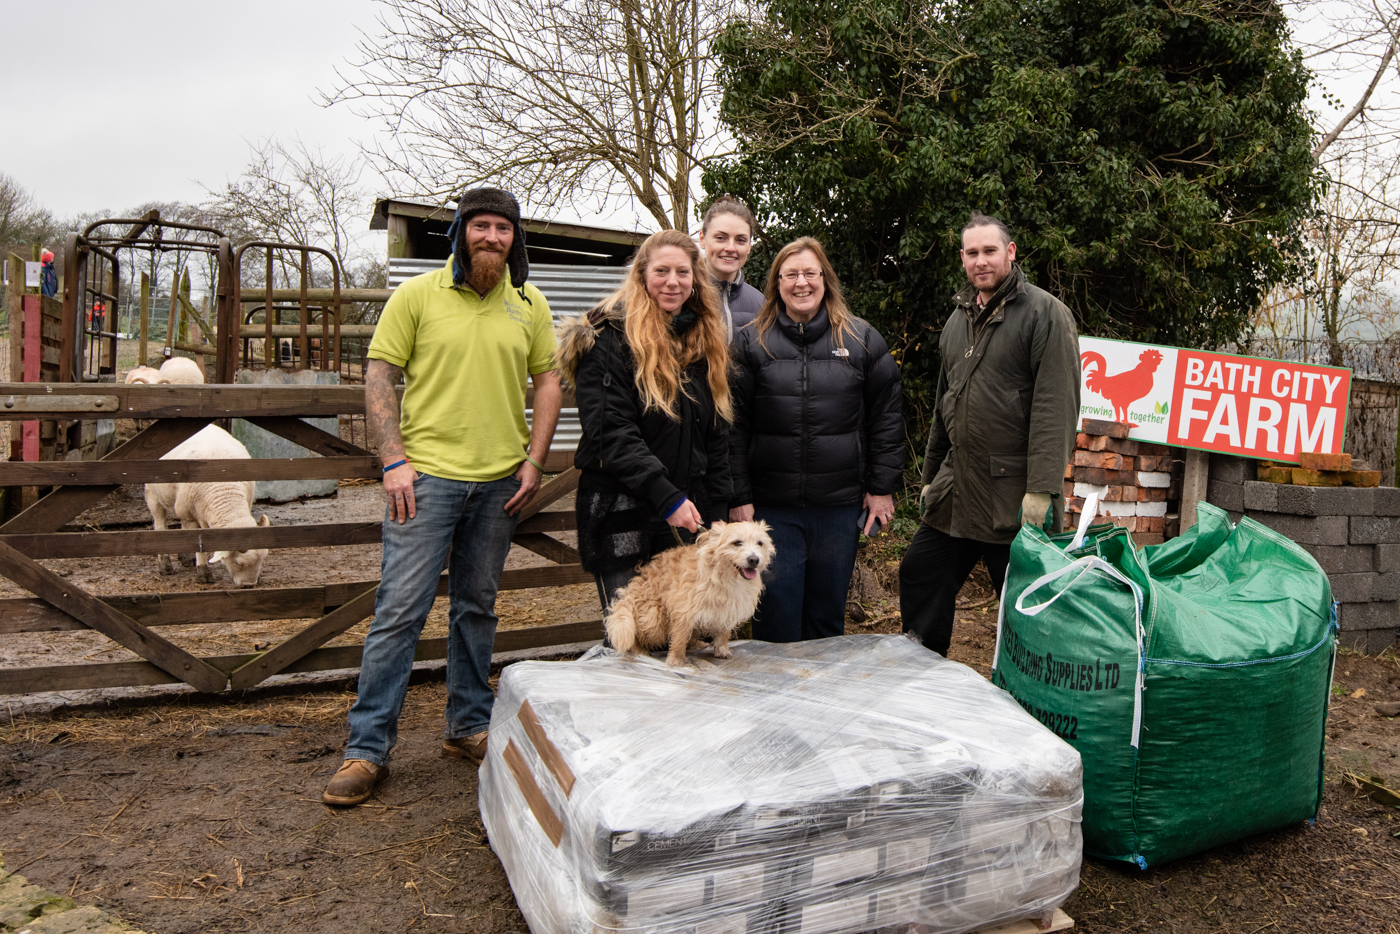 HPH donates building materials for new animal pens at Bath City Farm